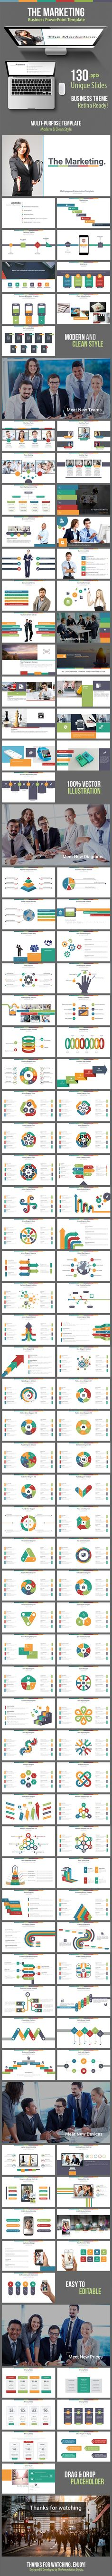 The Marketing - Business Powerpoint Template #slides #design Download: http://graphicriver.net/item/the-marketing-business-powerpoint-template/11740170?ref=ksioks